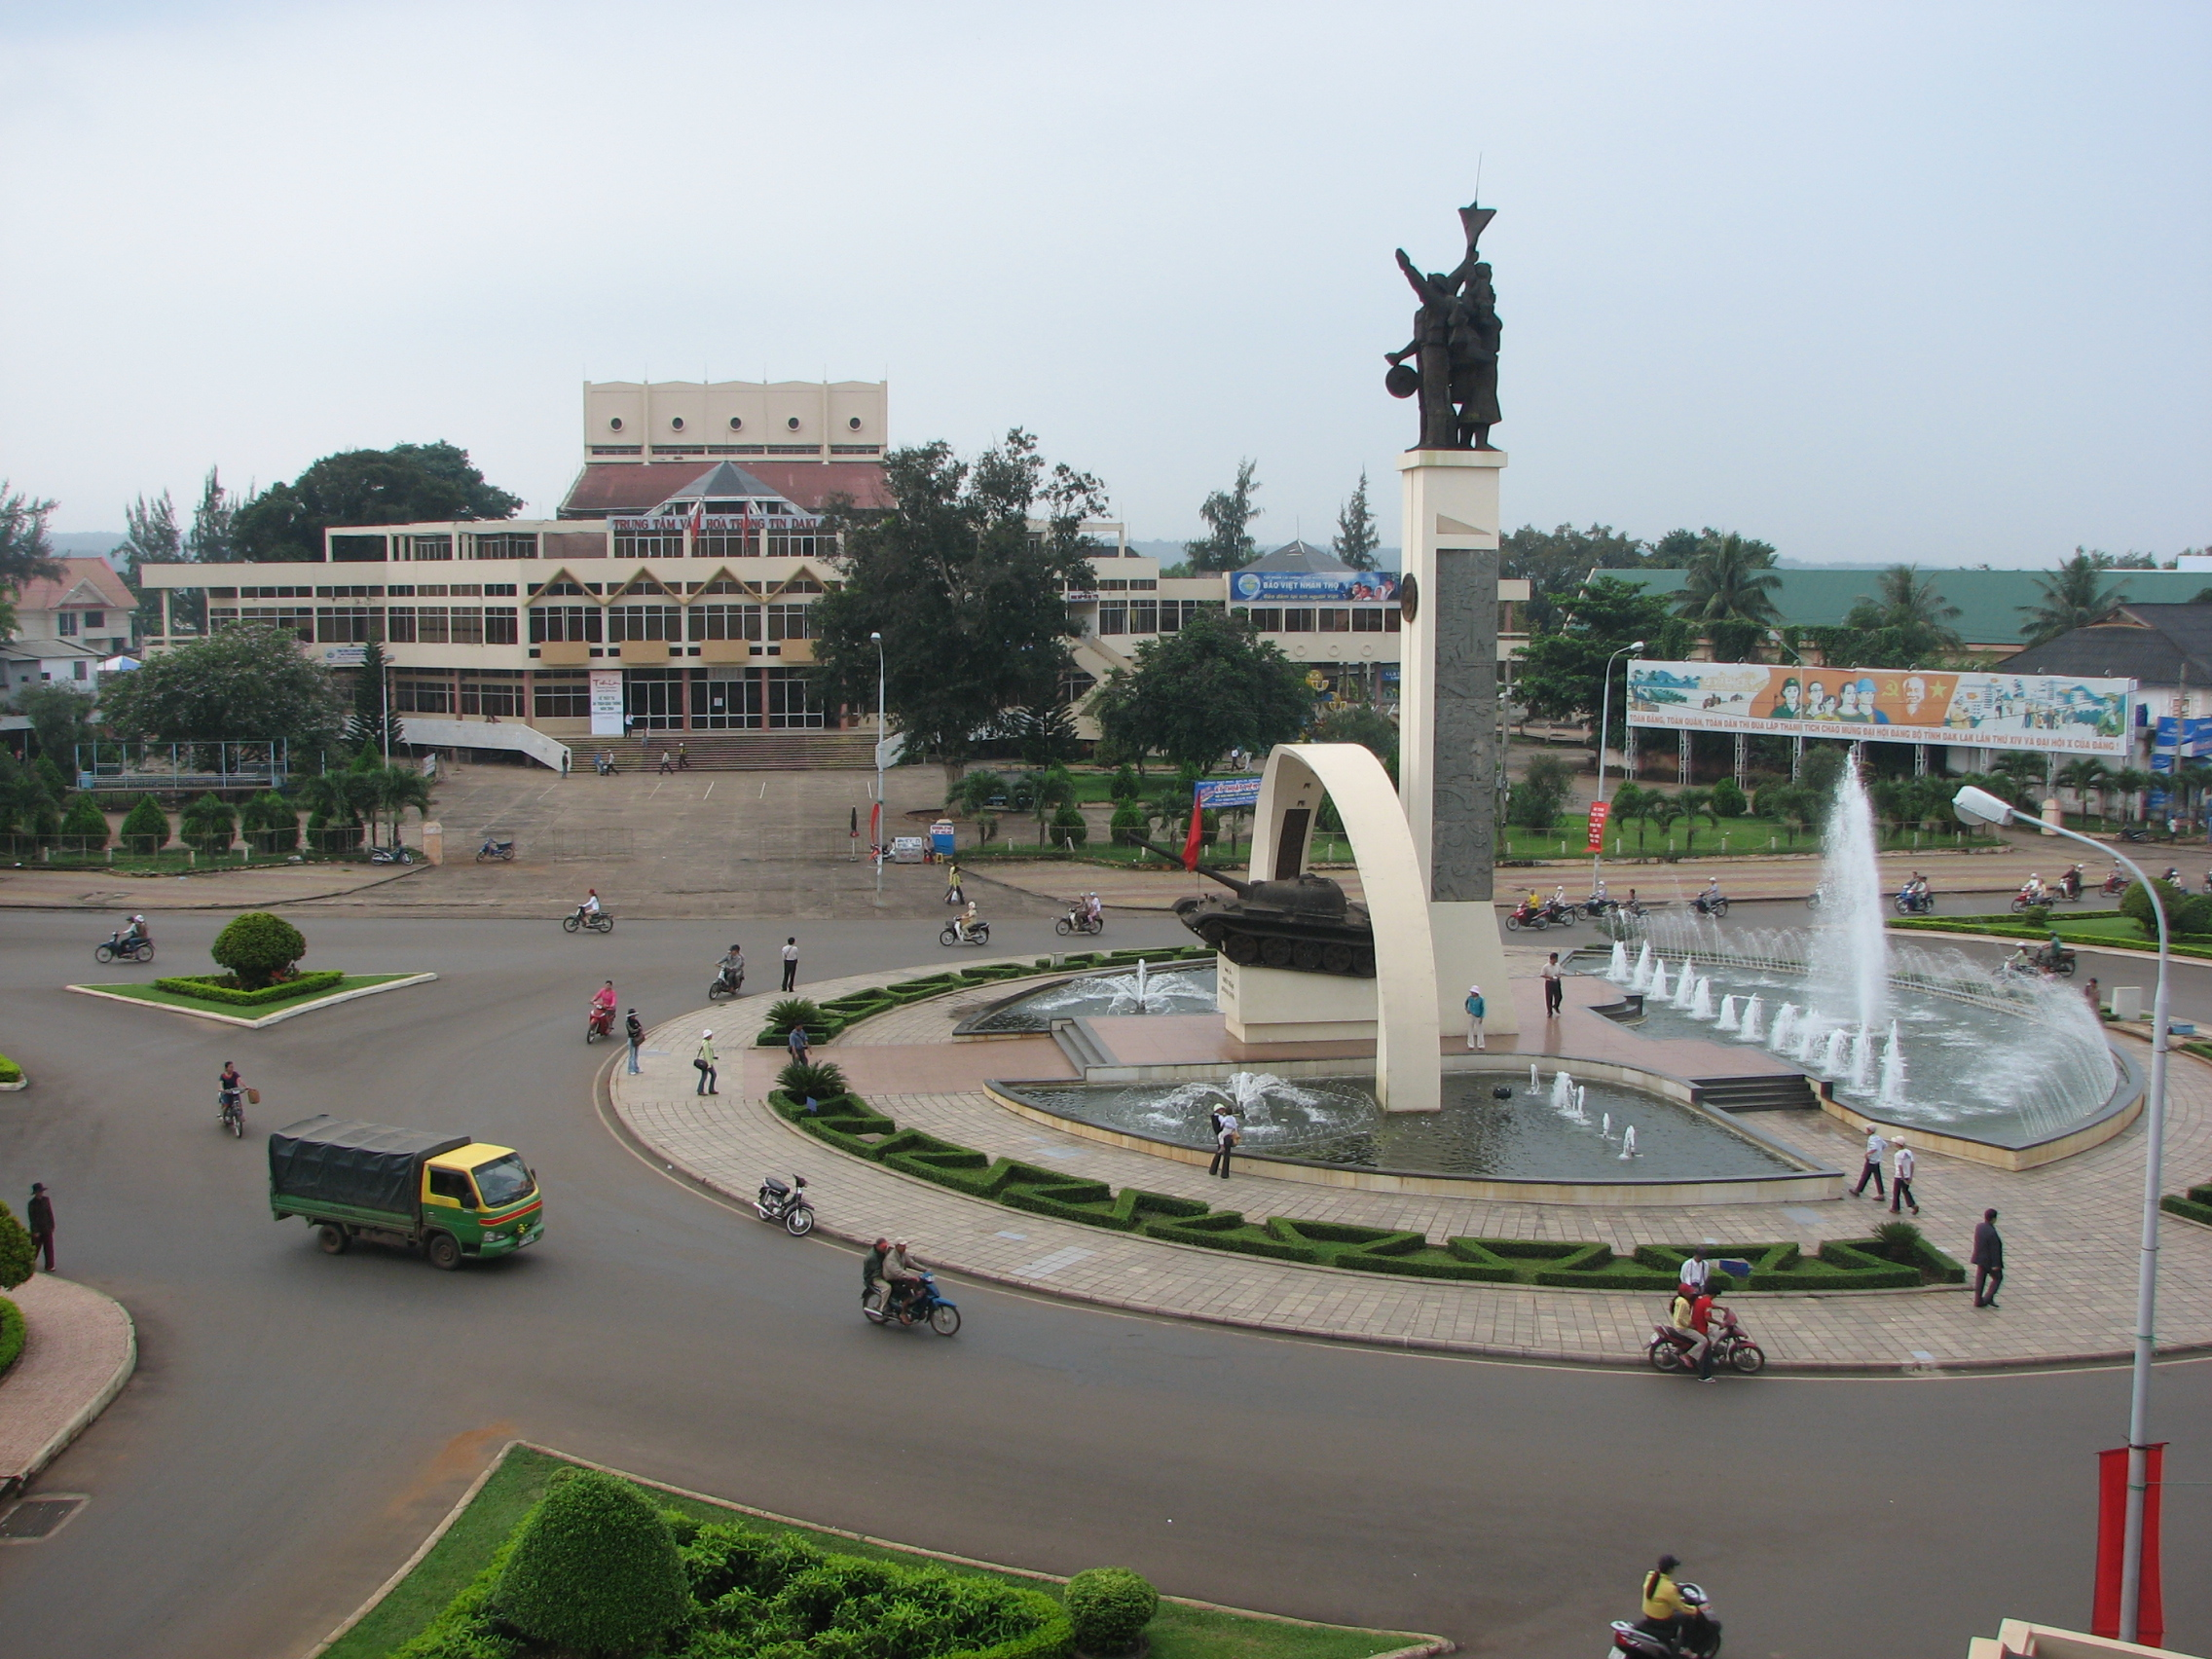 Buon Ma Thuot Vietnam  City pictures : Original file ‎ 2,272 × 1,704 pixels, file size: 1.62 MB, MIME ...